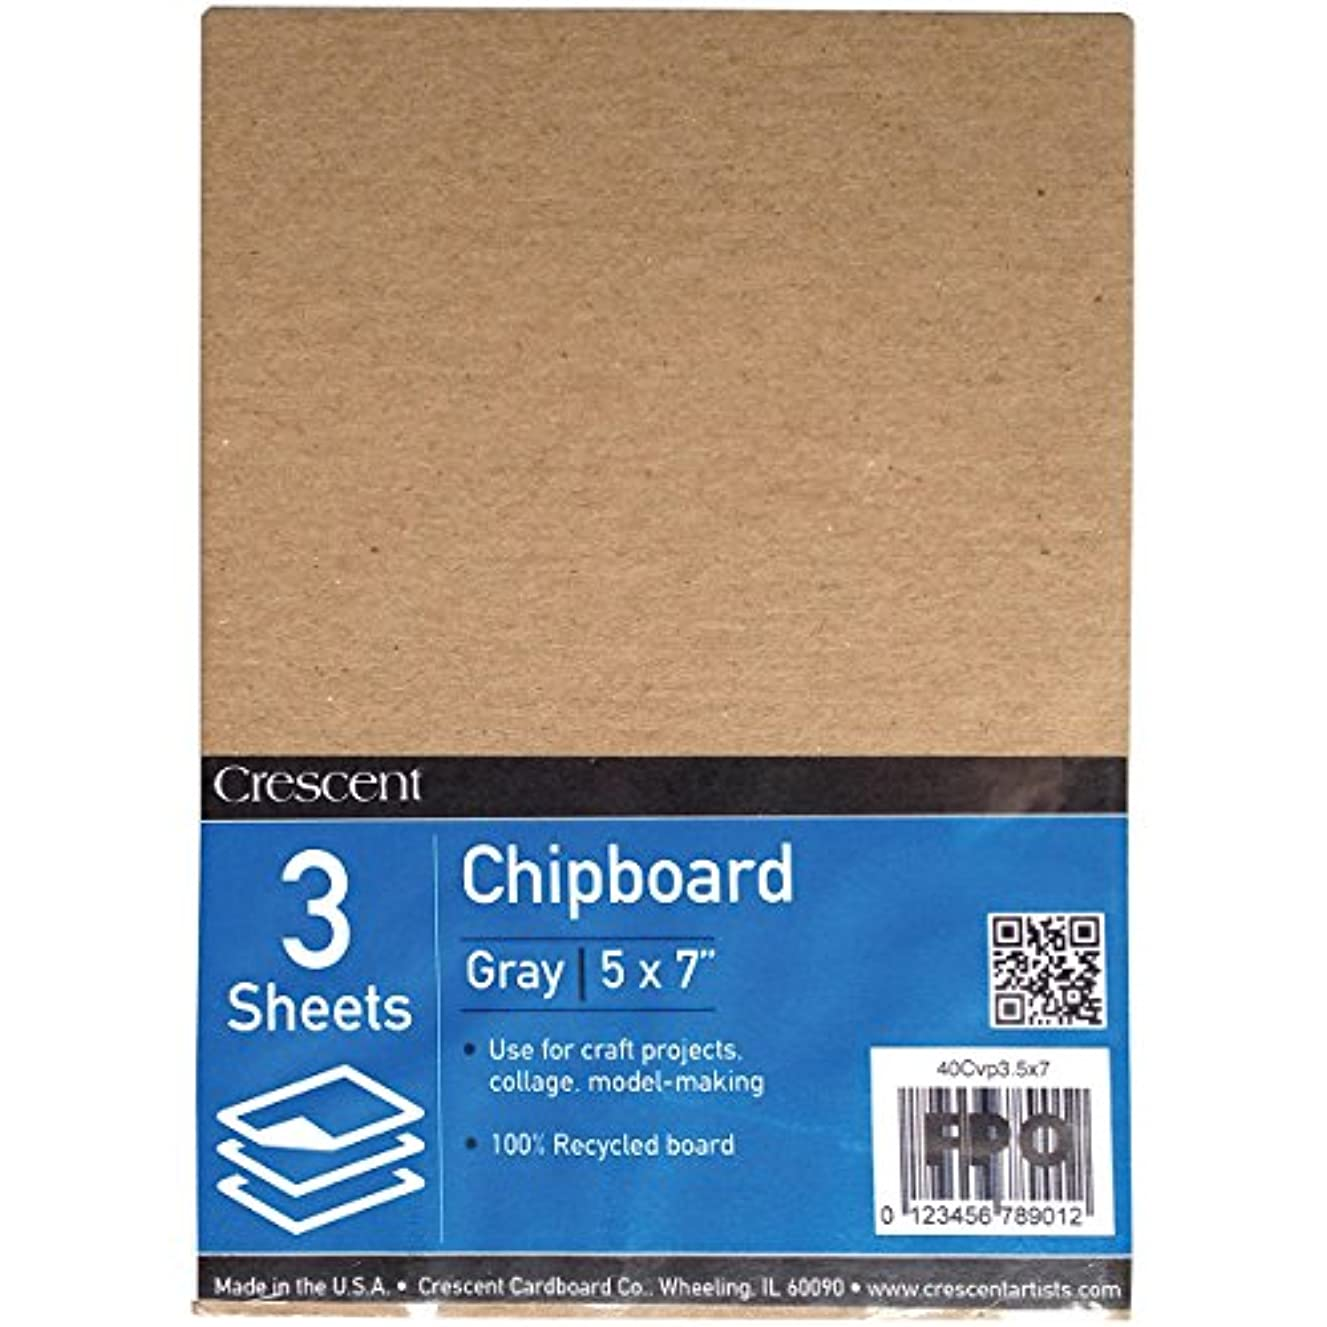 Crescent Creative Products VP40C-0507 (3 Count) #40C Value Pack Recycled Chipboard, 5